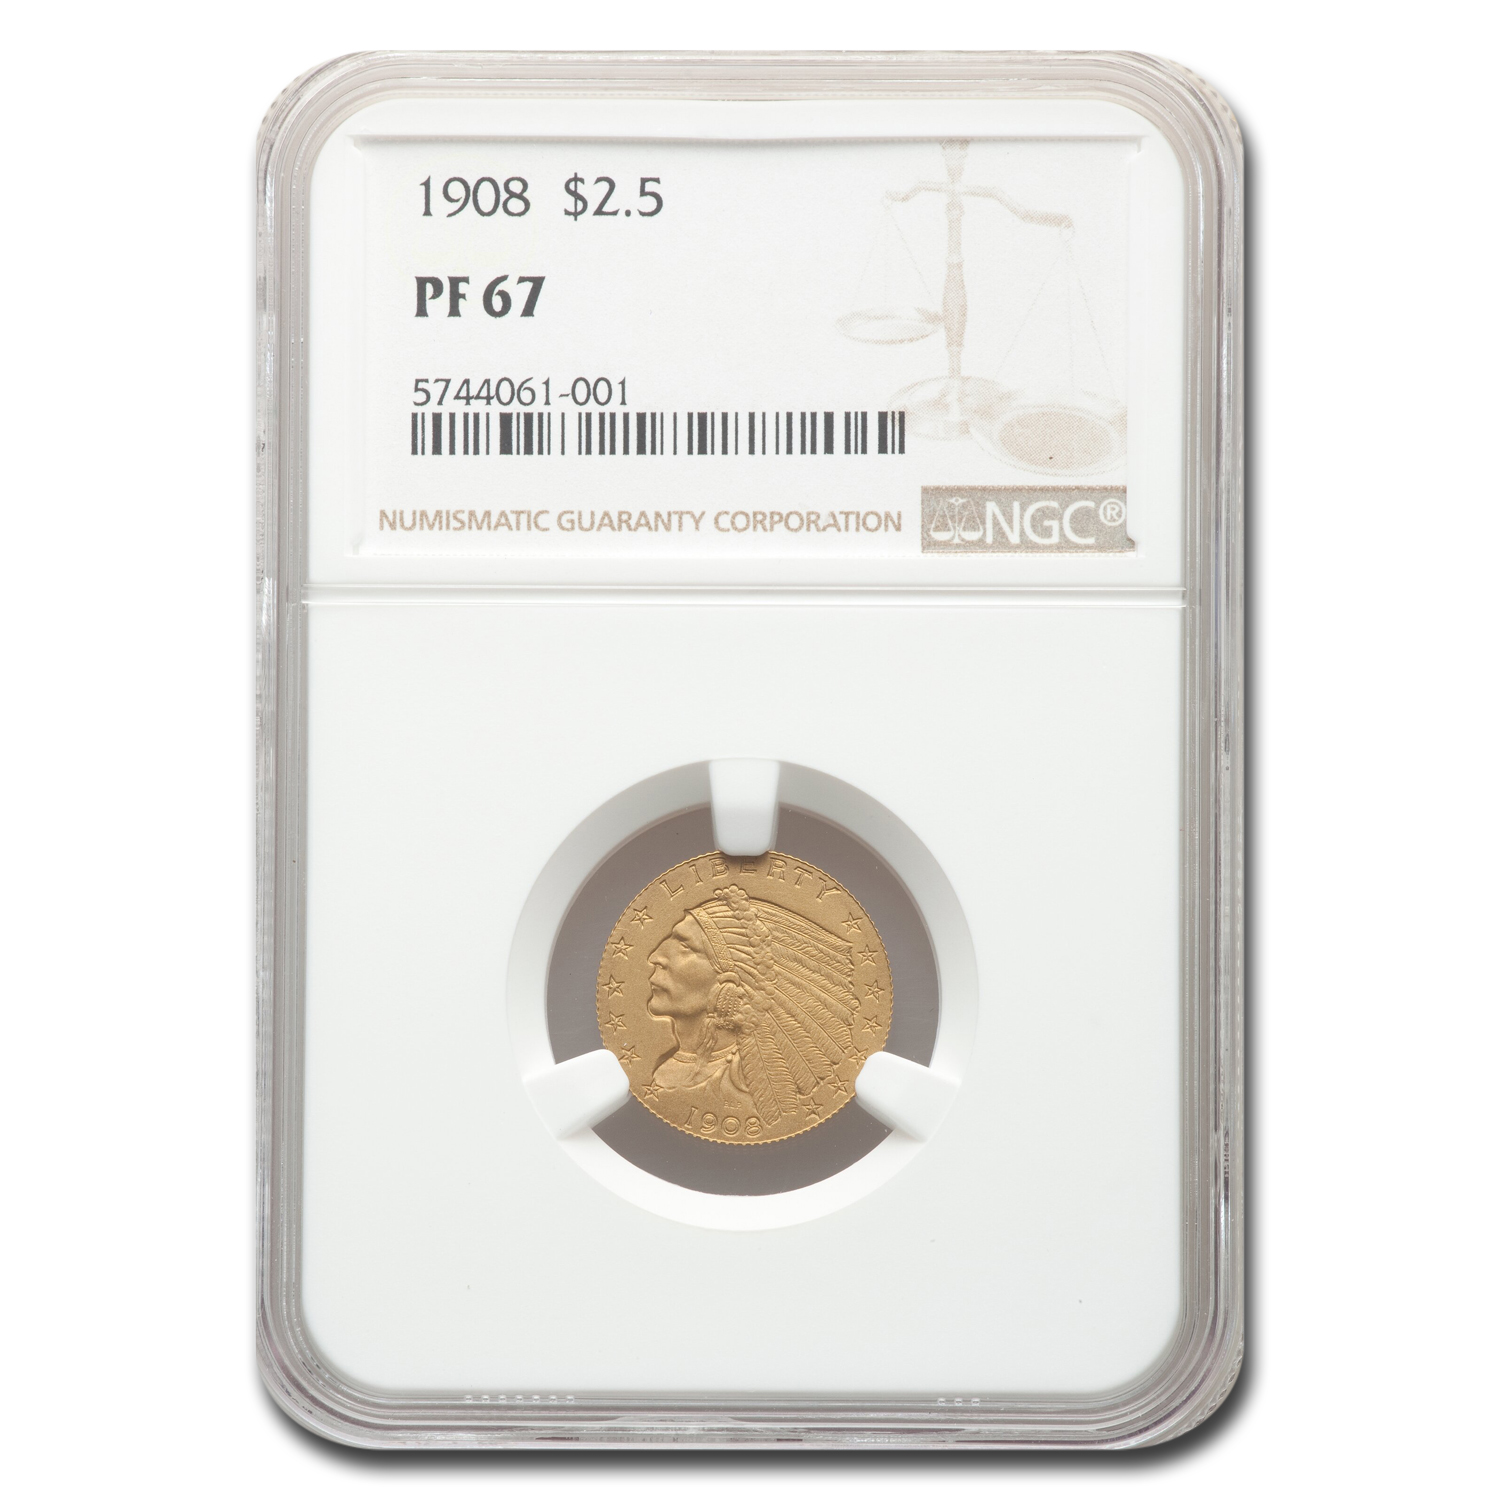 1908 $2.50 Indian Gold Quarter Eagle PF-67 NGC